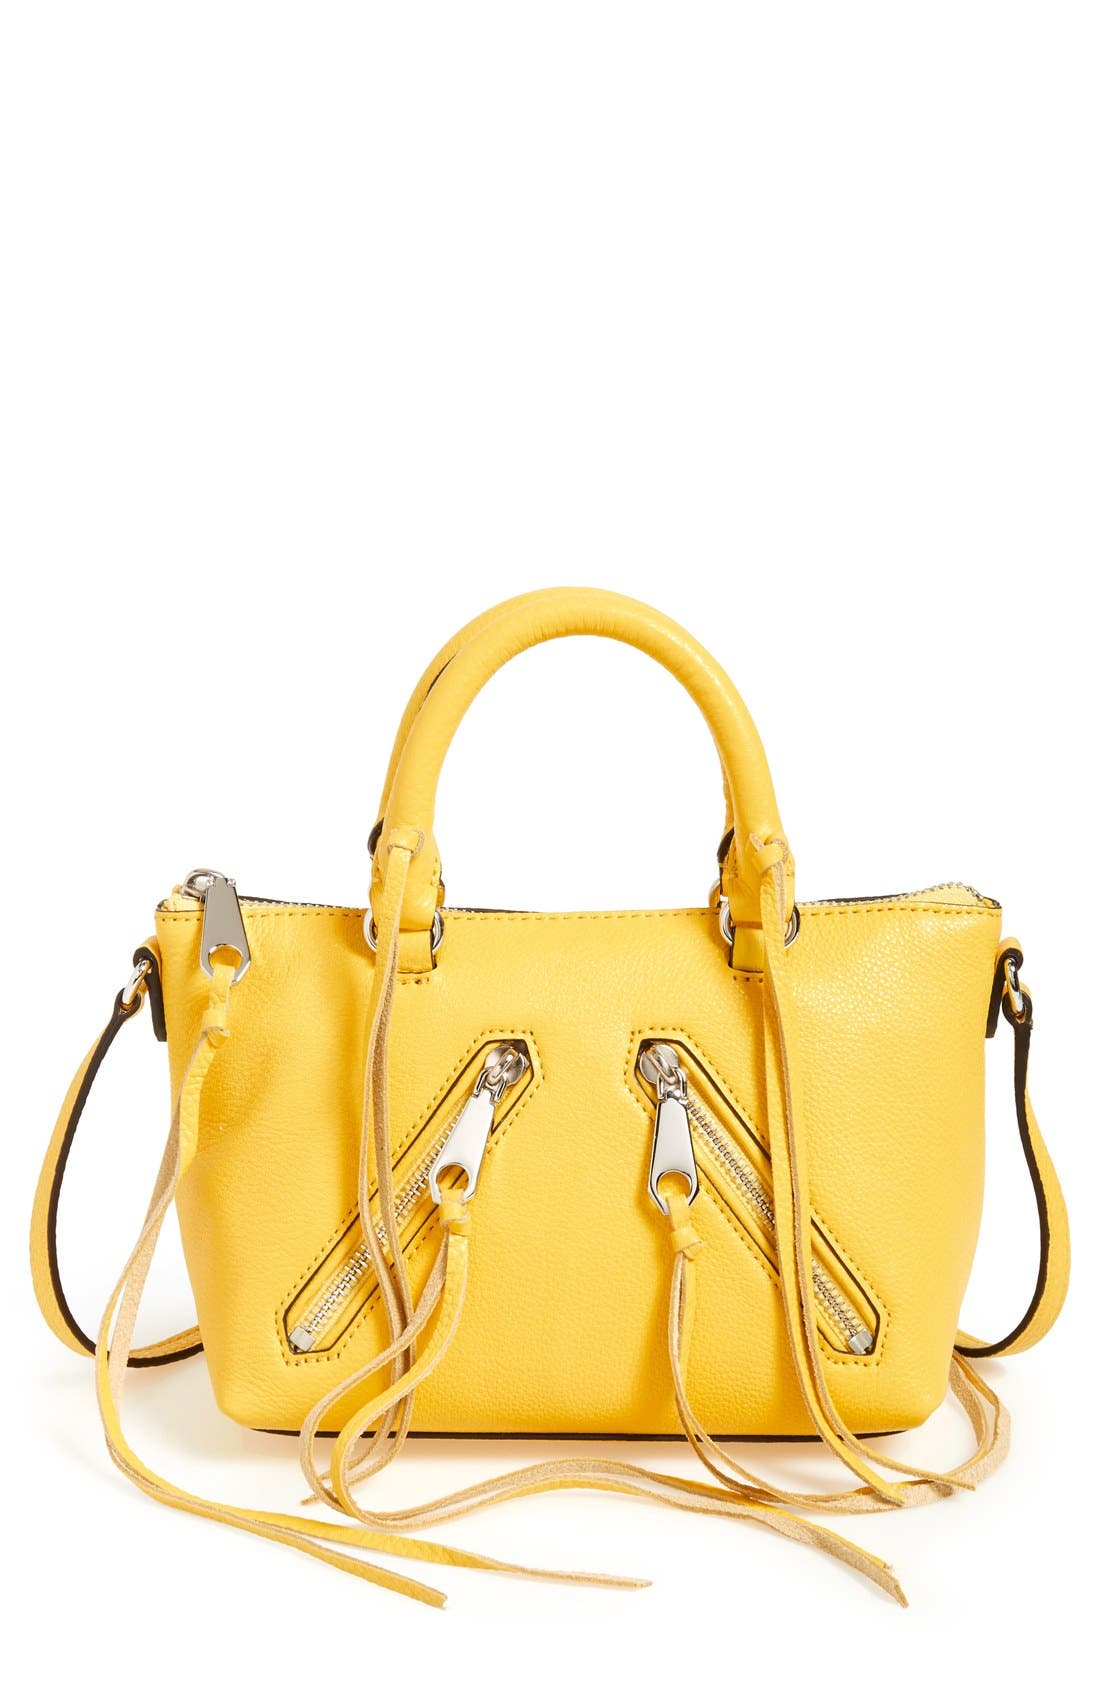 Alternate Image 1 Selected - Rebecca Minkoff 'Micro Moto' Leather Satchel